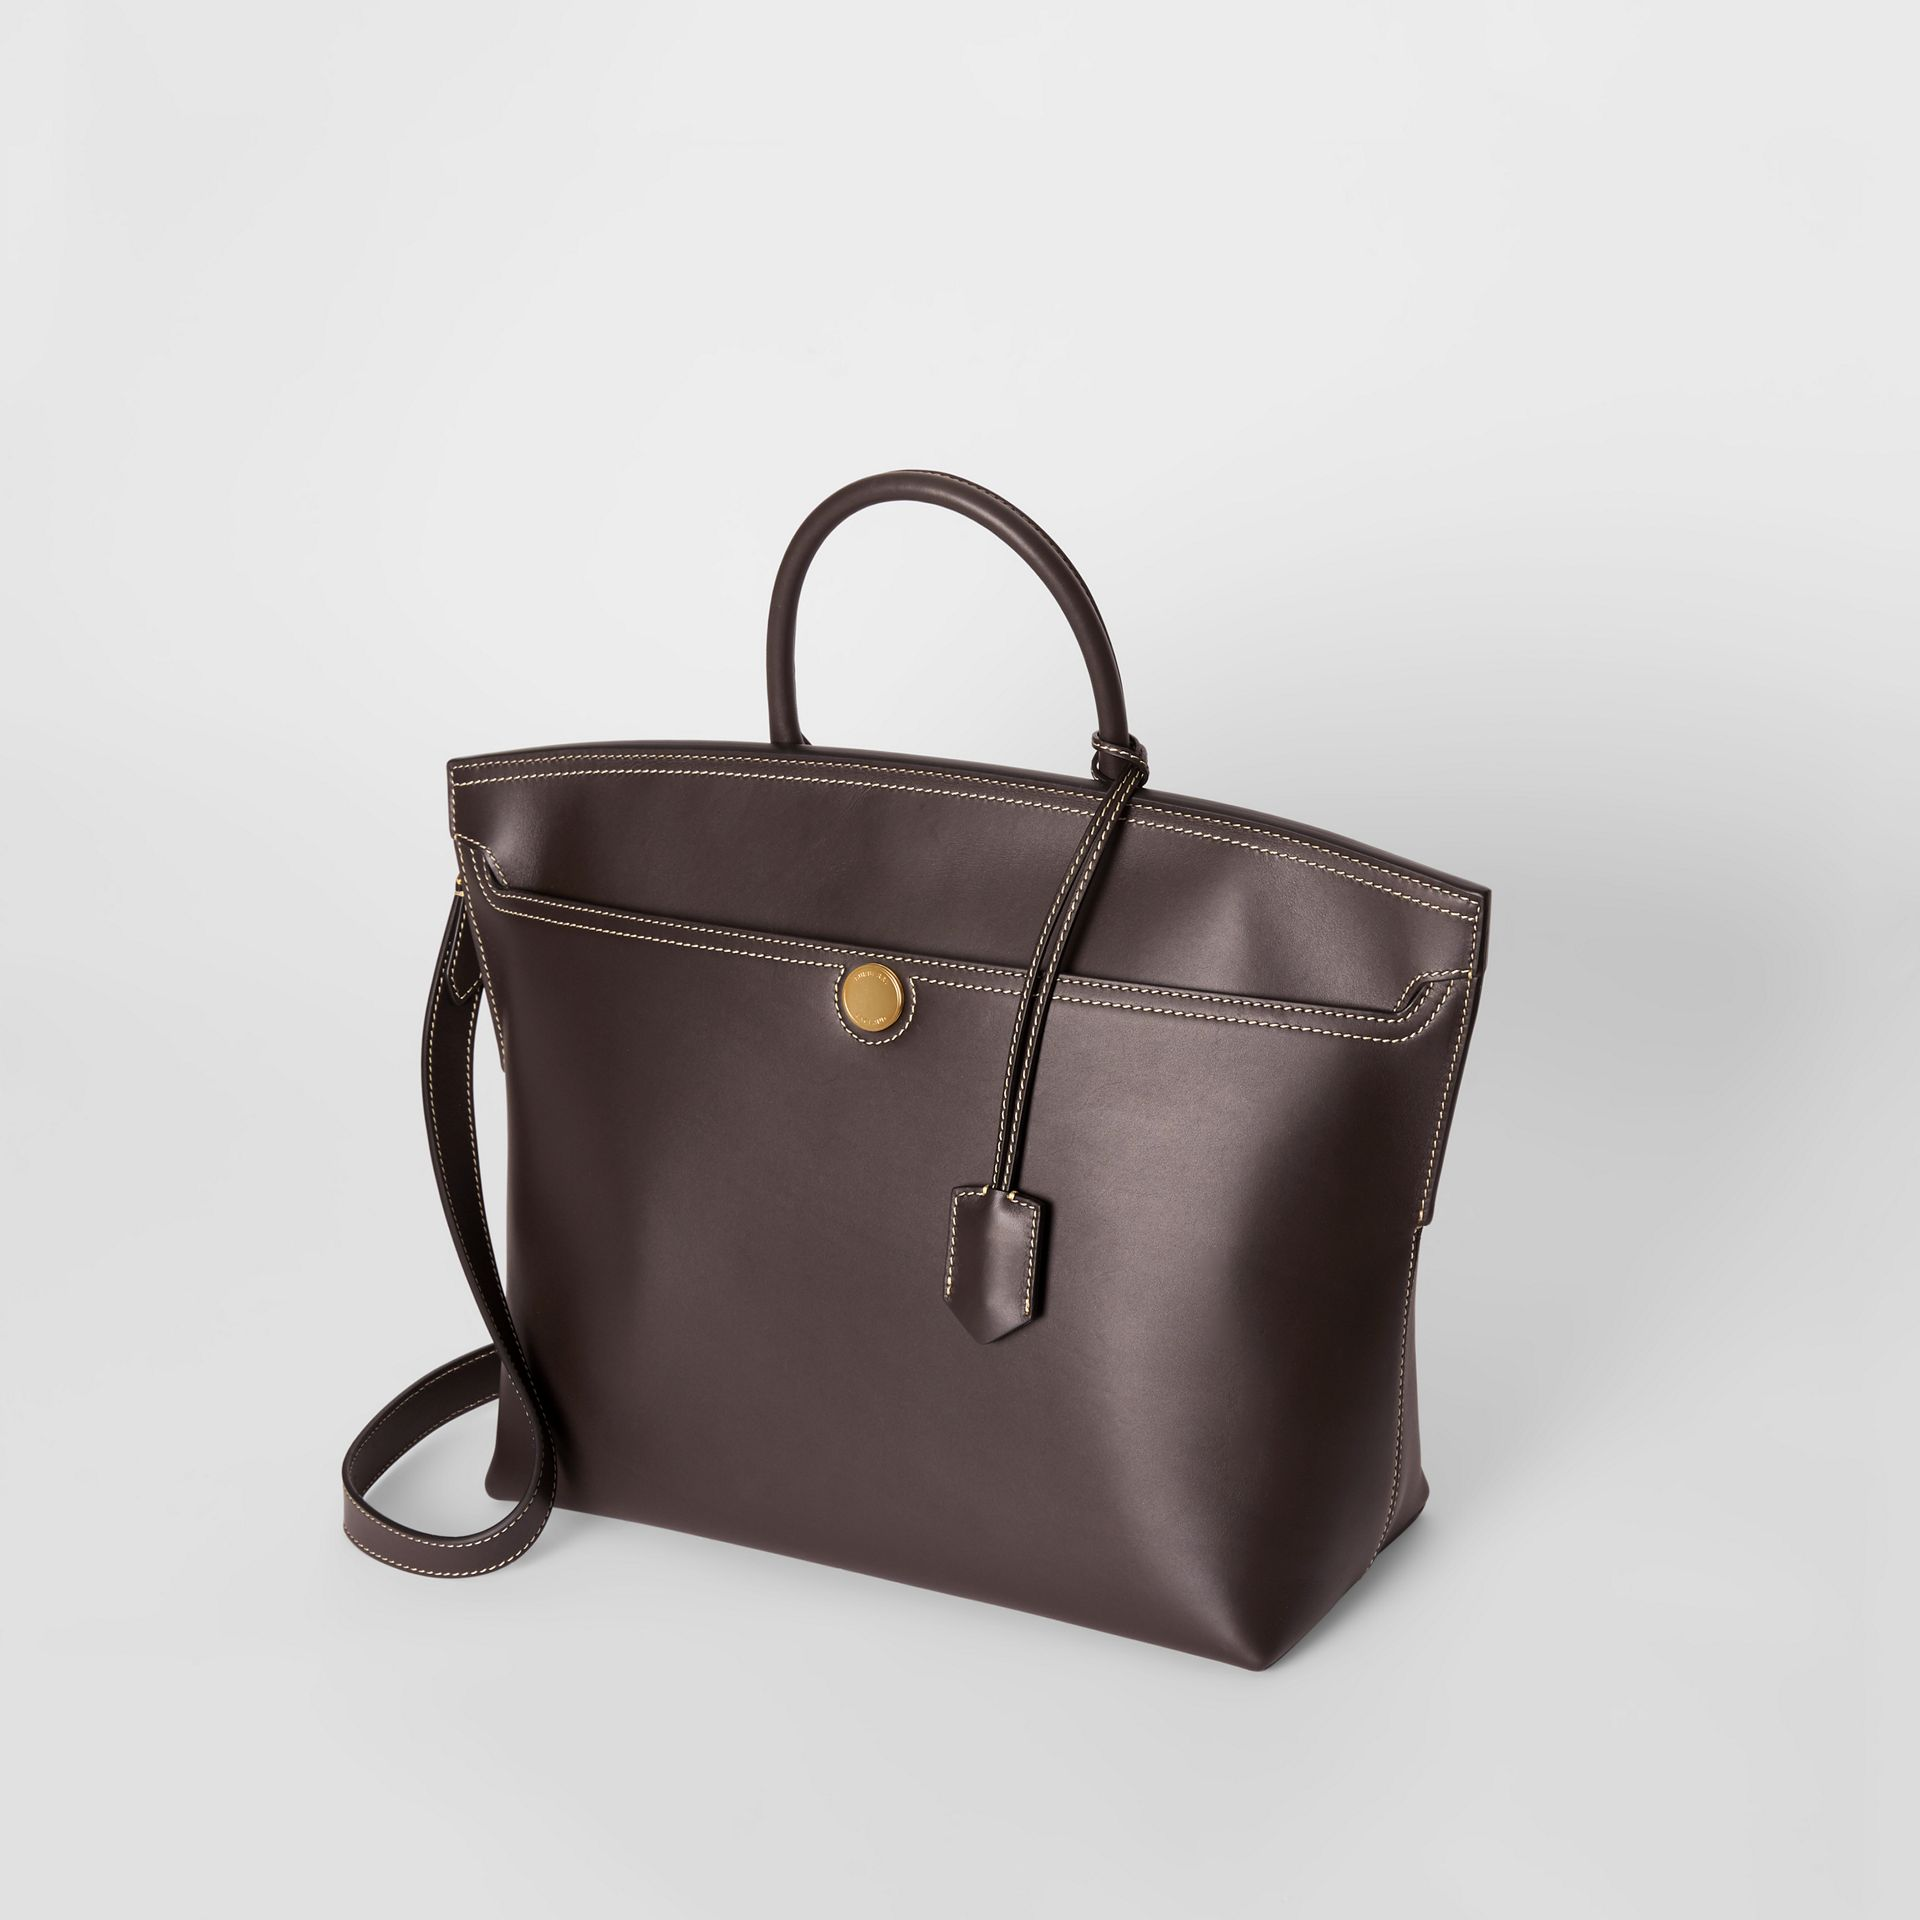 Leather Society Top Handle Bag in Coffee - Women | Burberry United States - gallery image 3